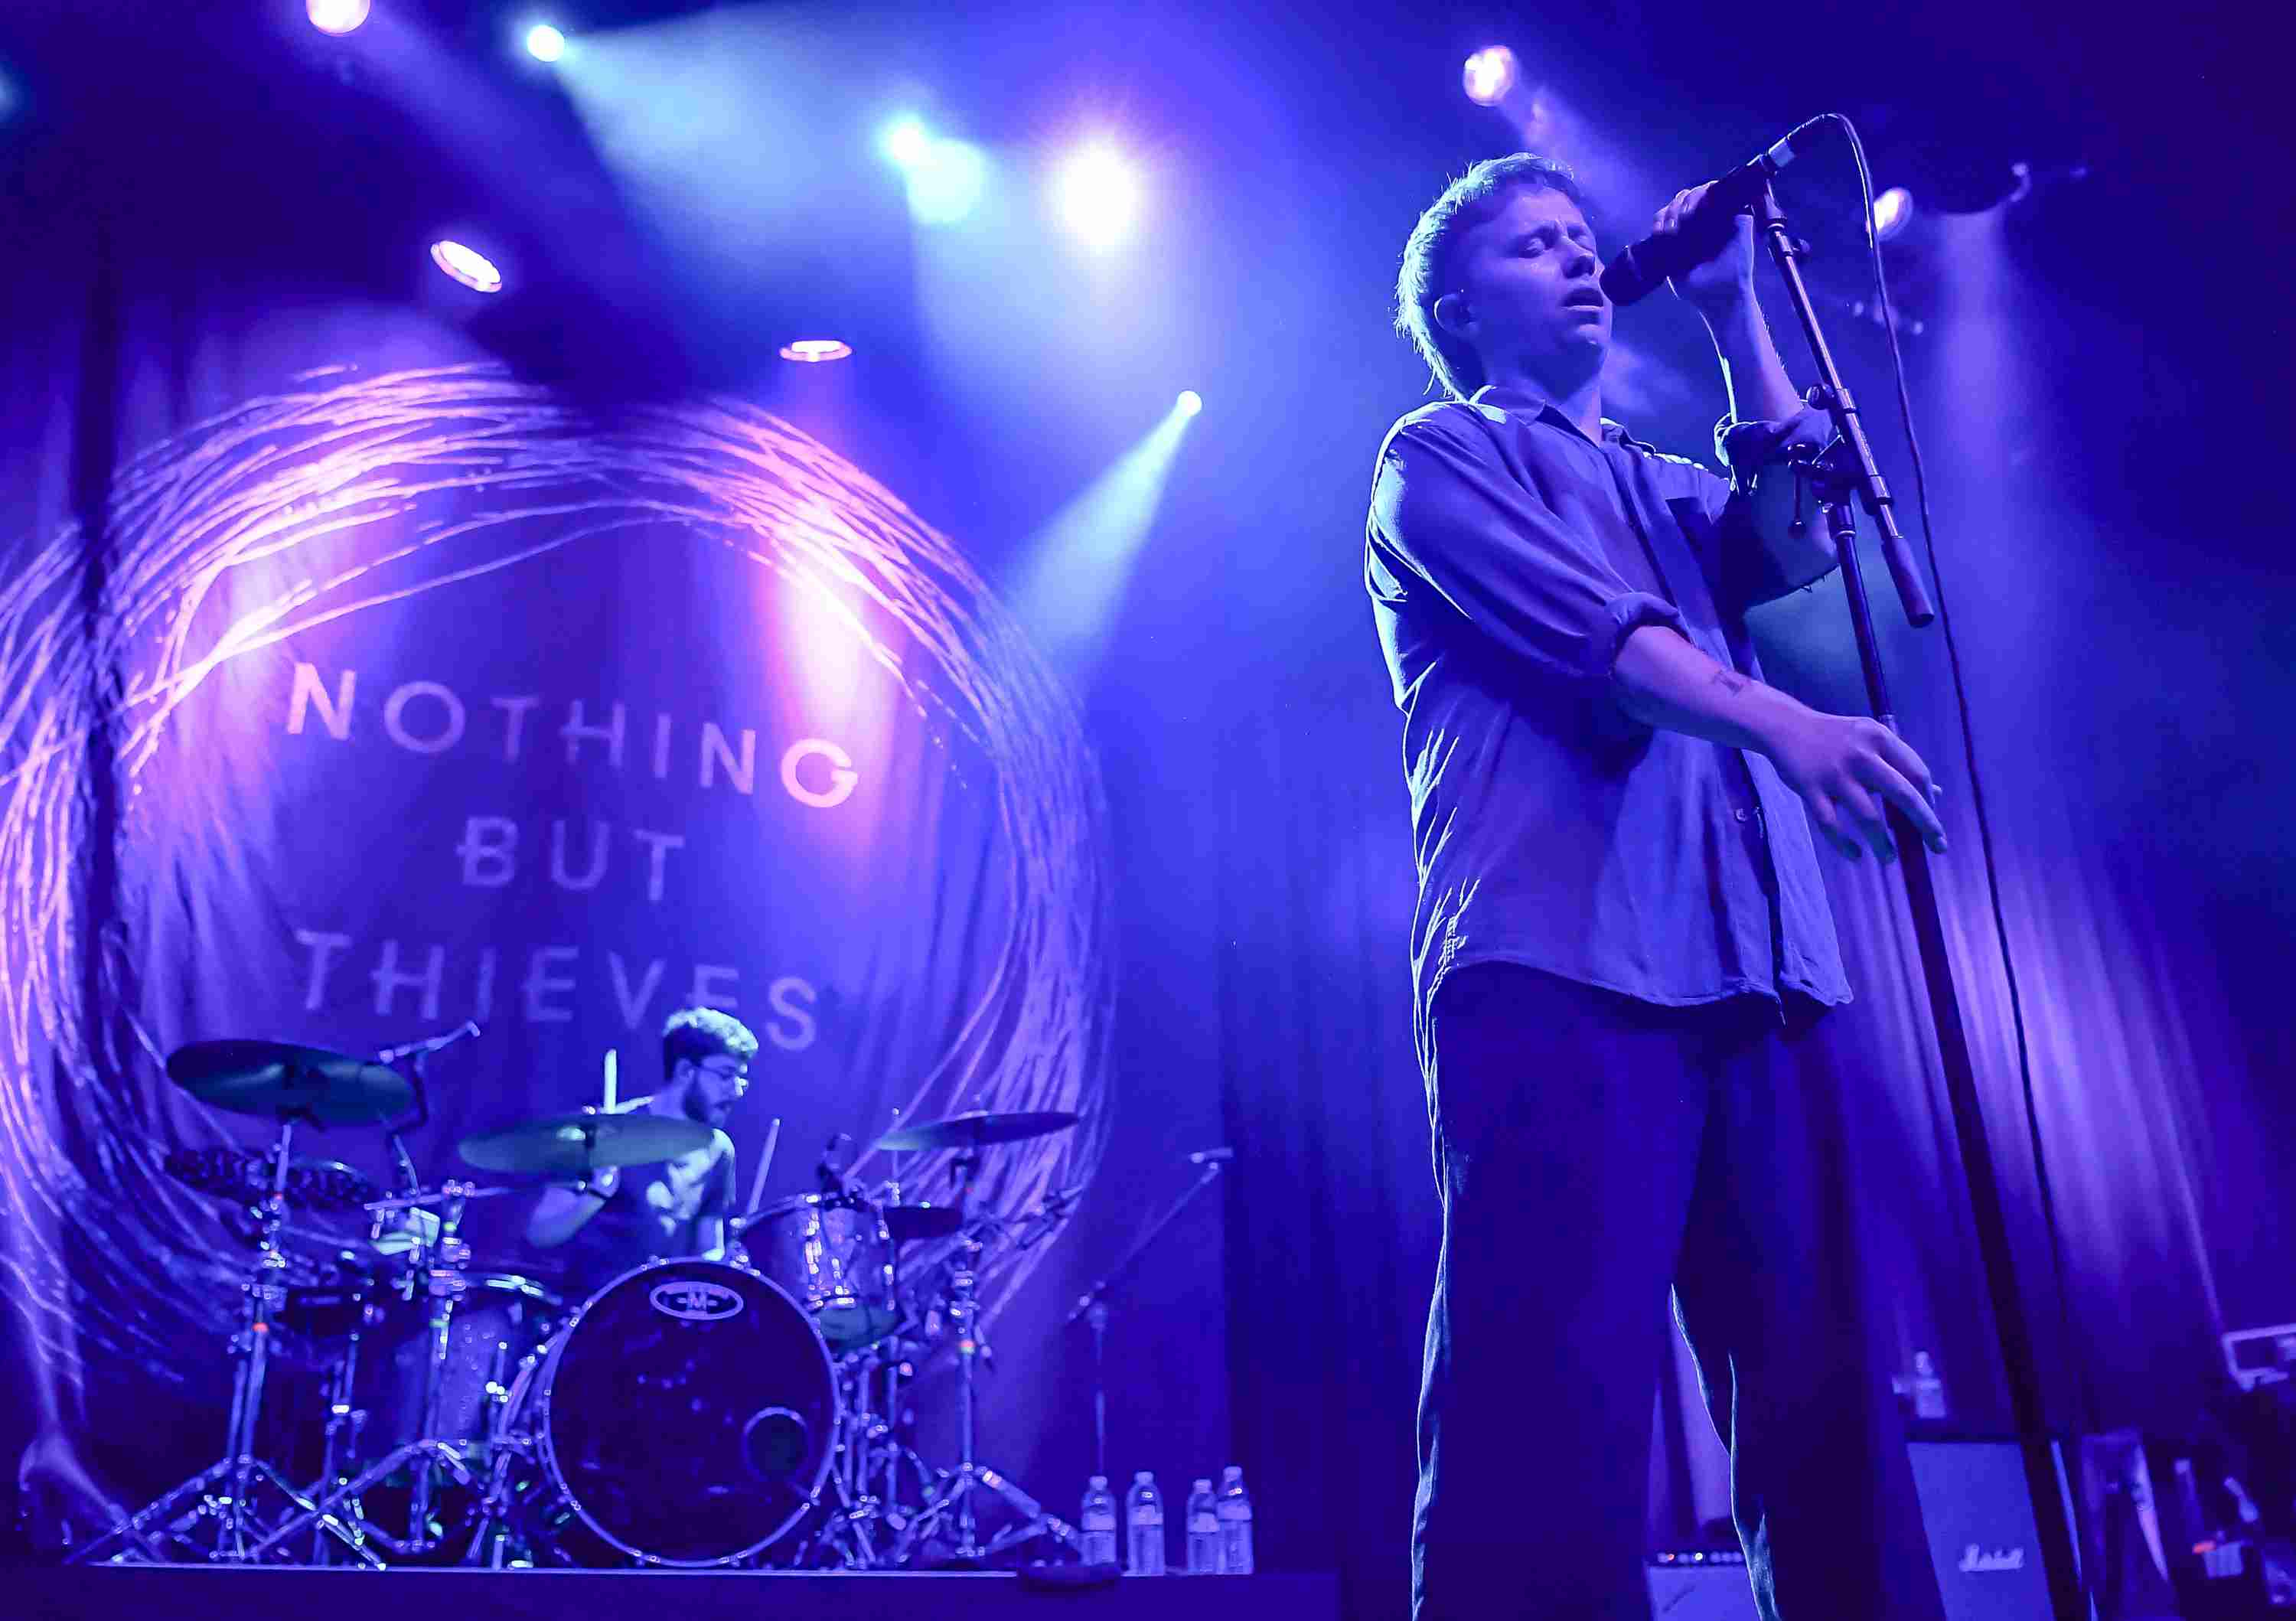 Nothing But Thieves In Concert - San Francisco, CA